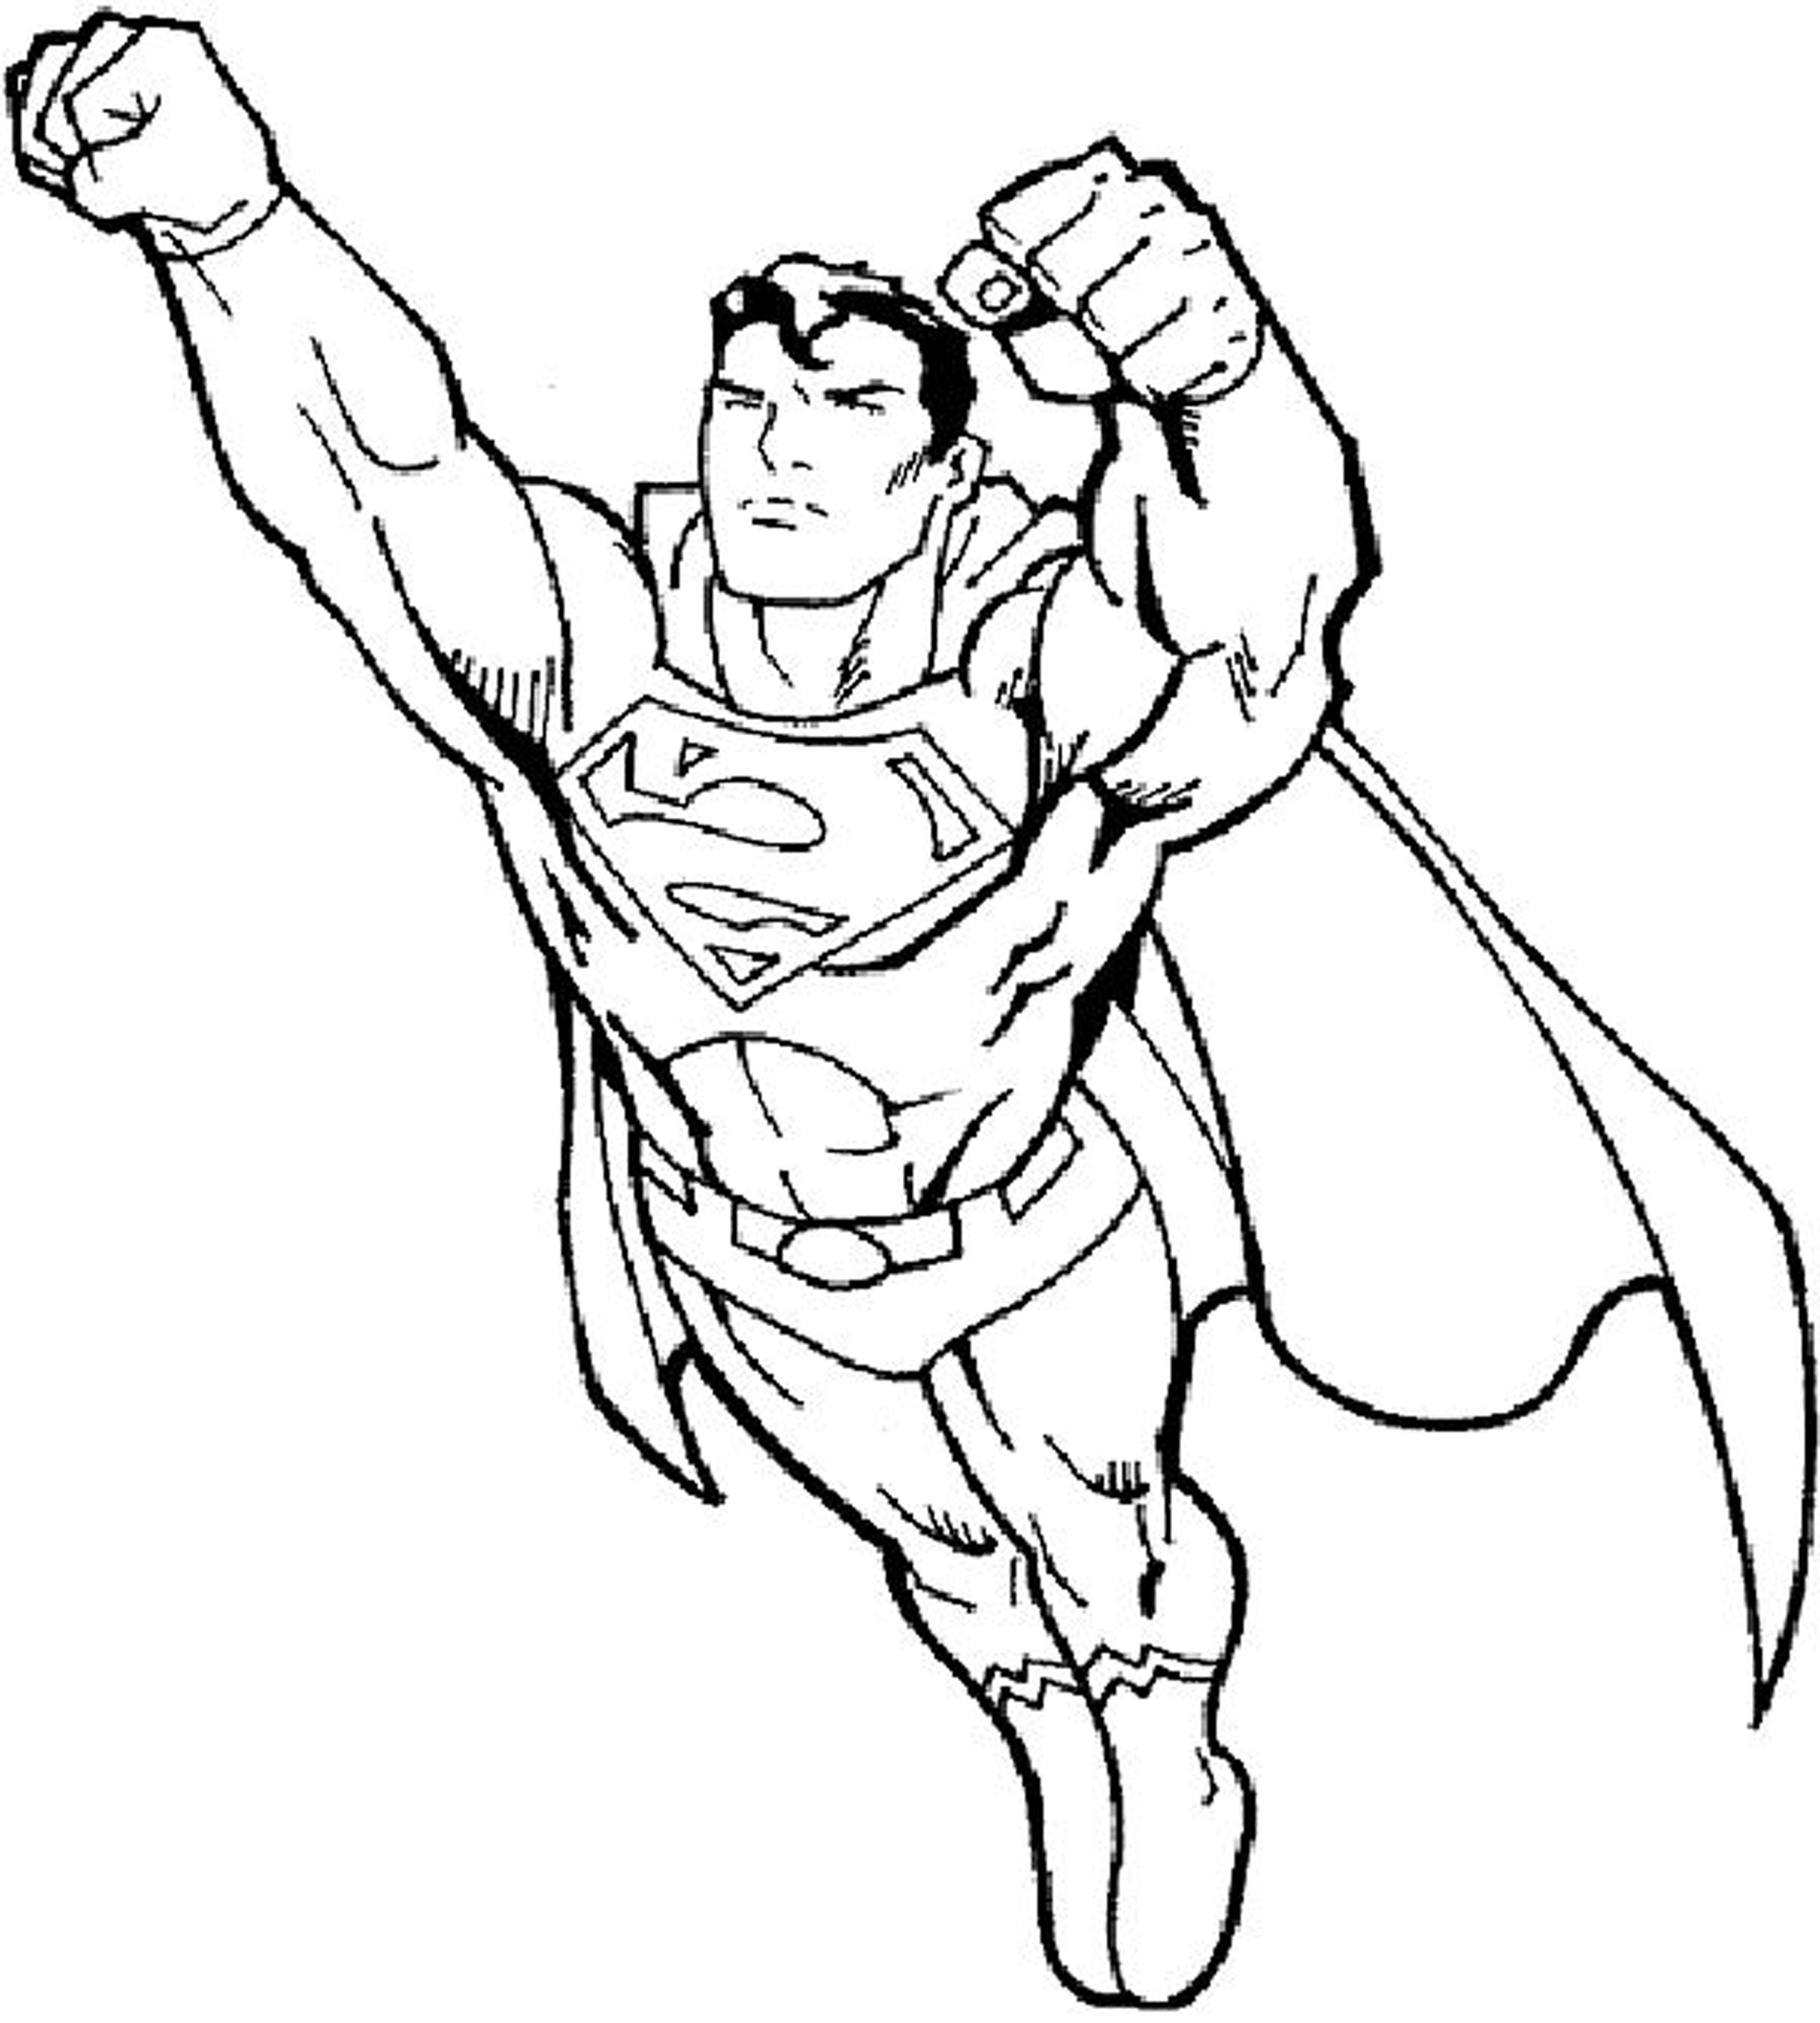 superman coloring images superman coloring pages to download and print for free superman coloring images